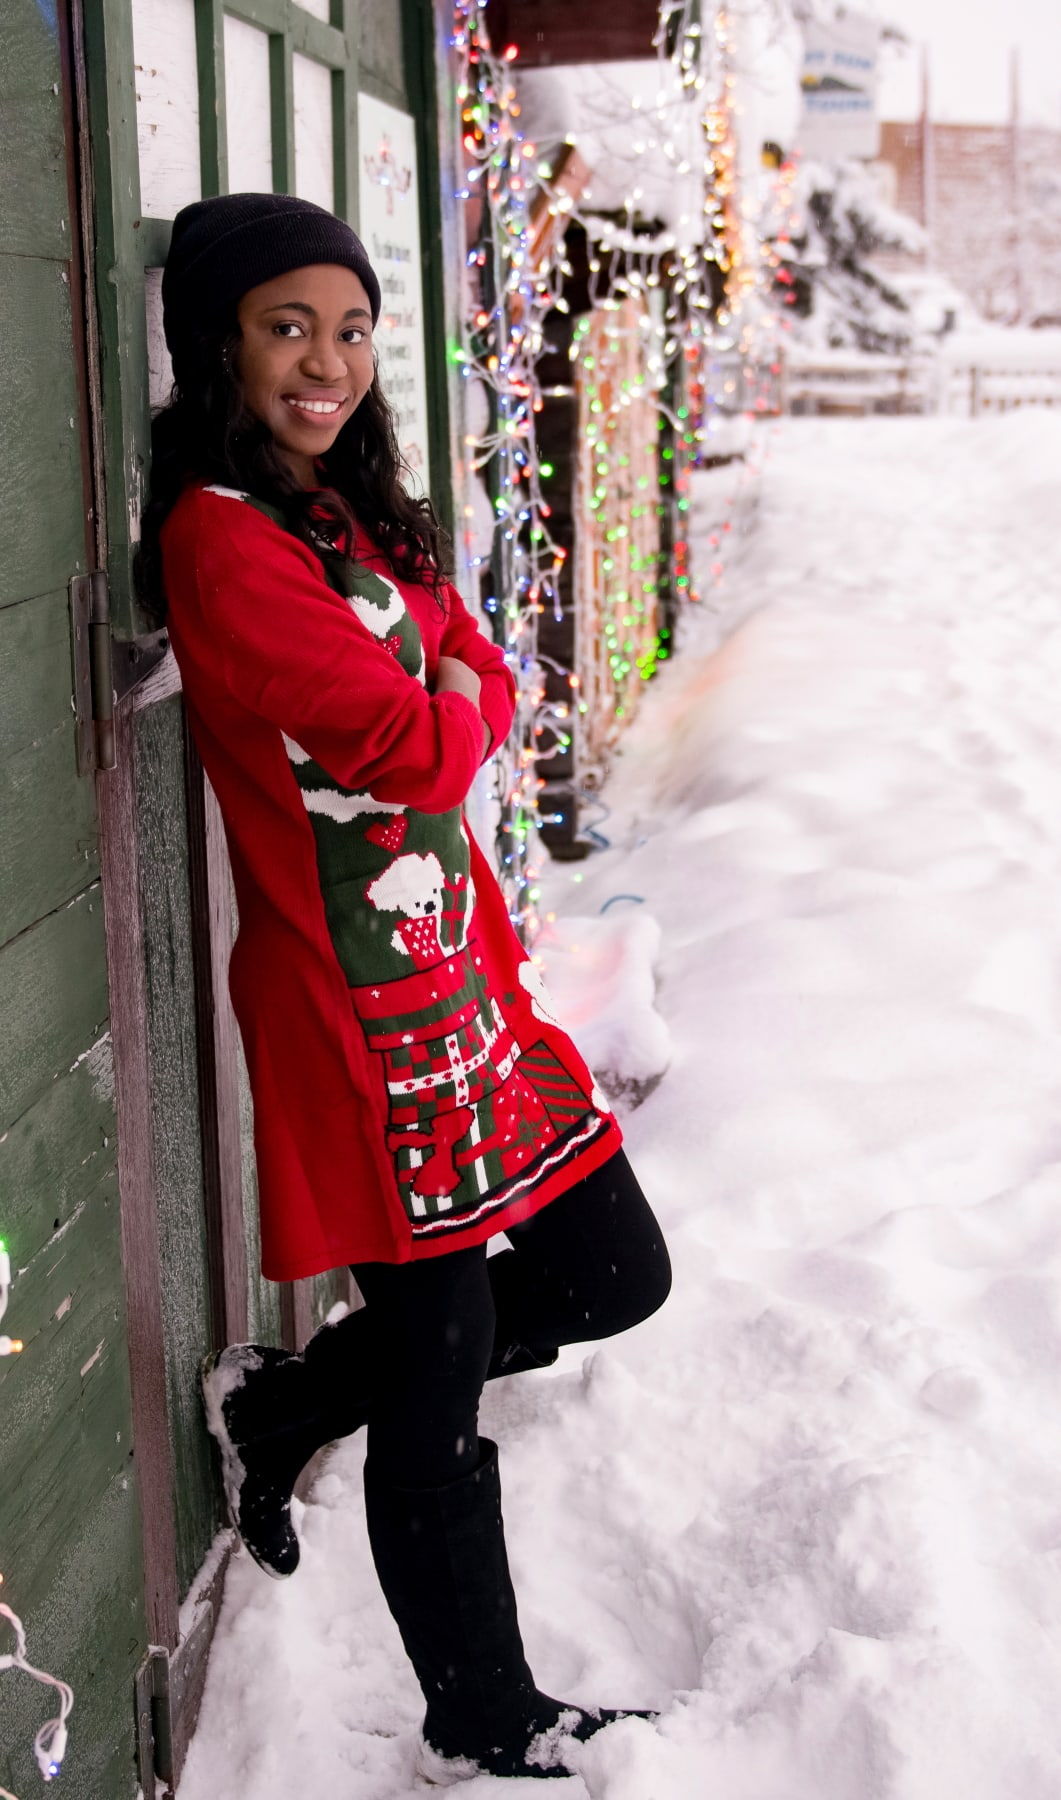 Looking for the best cutely ugly Xmas sweaters? Check out this roundup of the best sweater dresses to rock this year and beyond. #uglysweater #xmassweater #sweaterdress